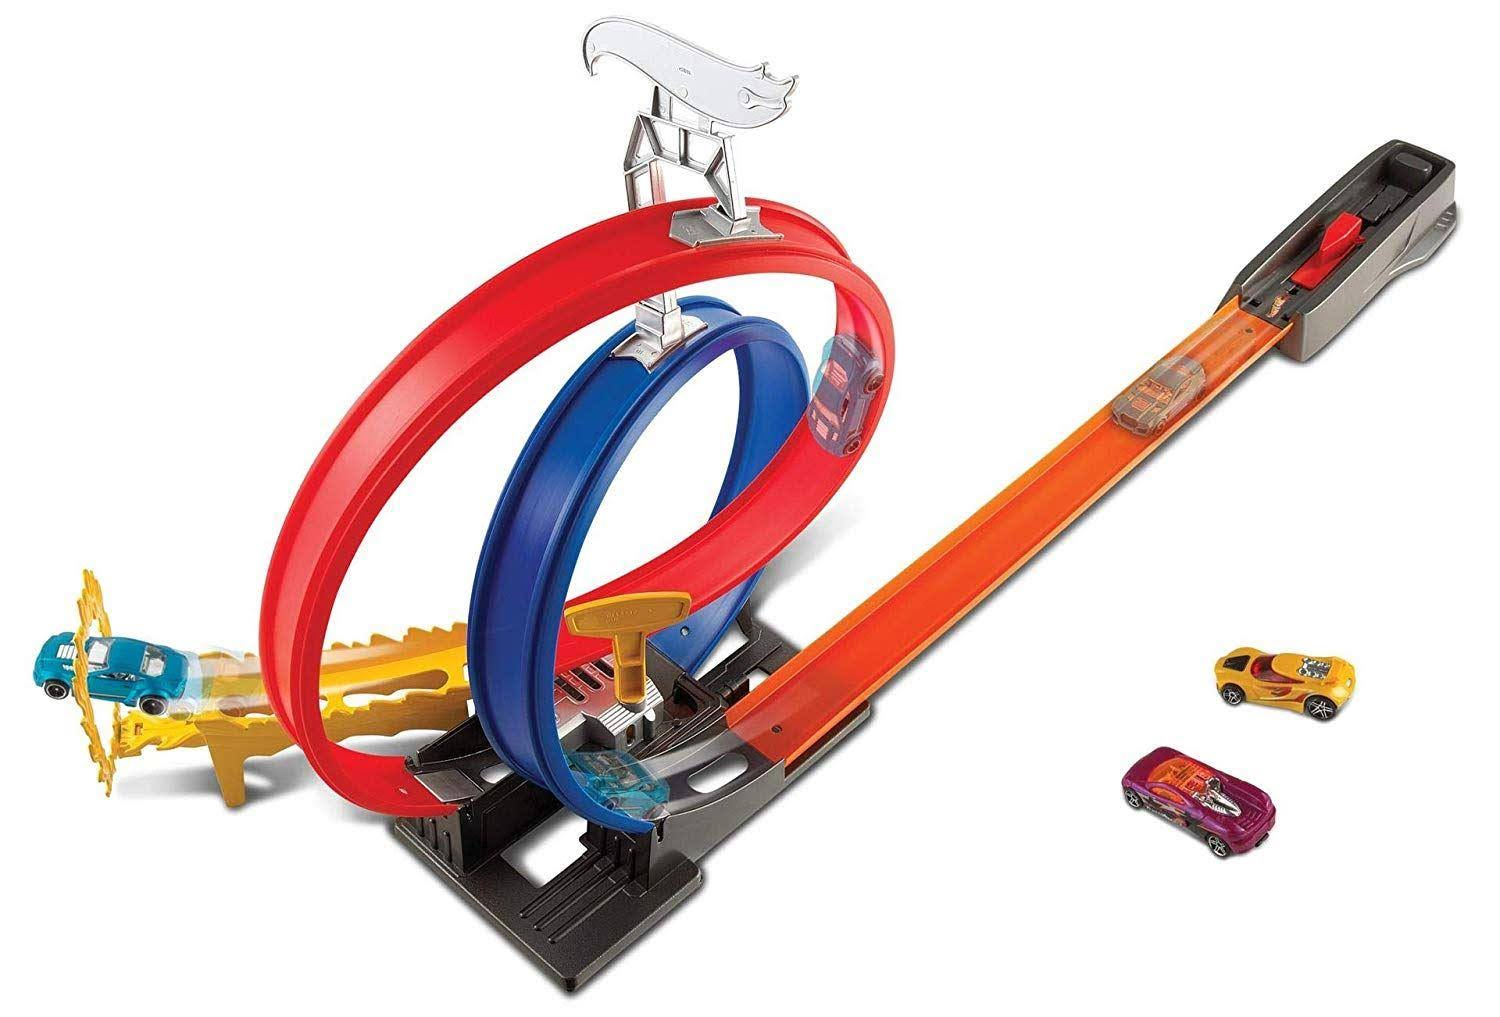 Hot Wheels Turbo Race Diecast Set - Scale 1:64